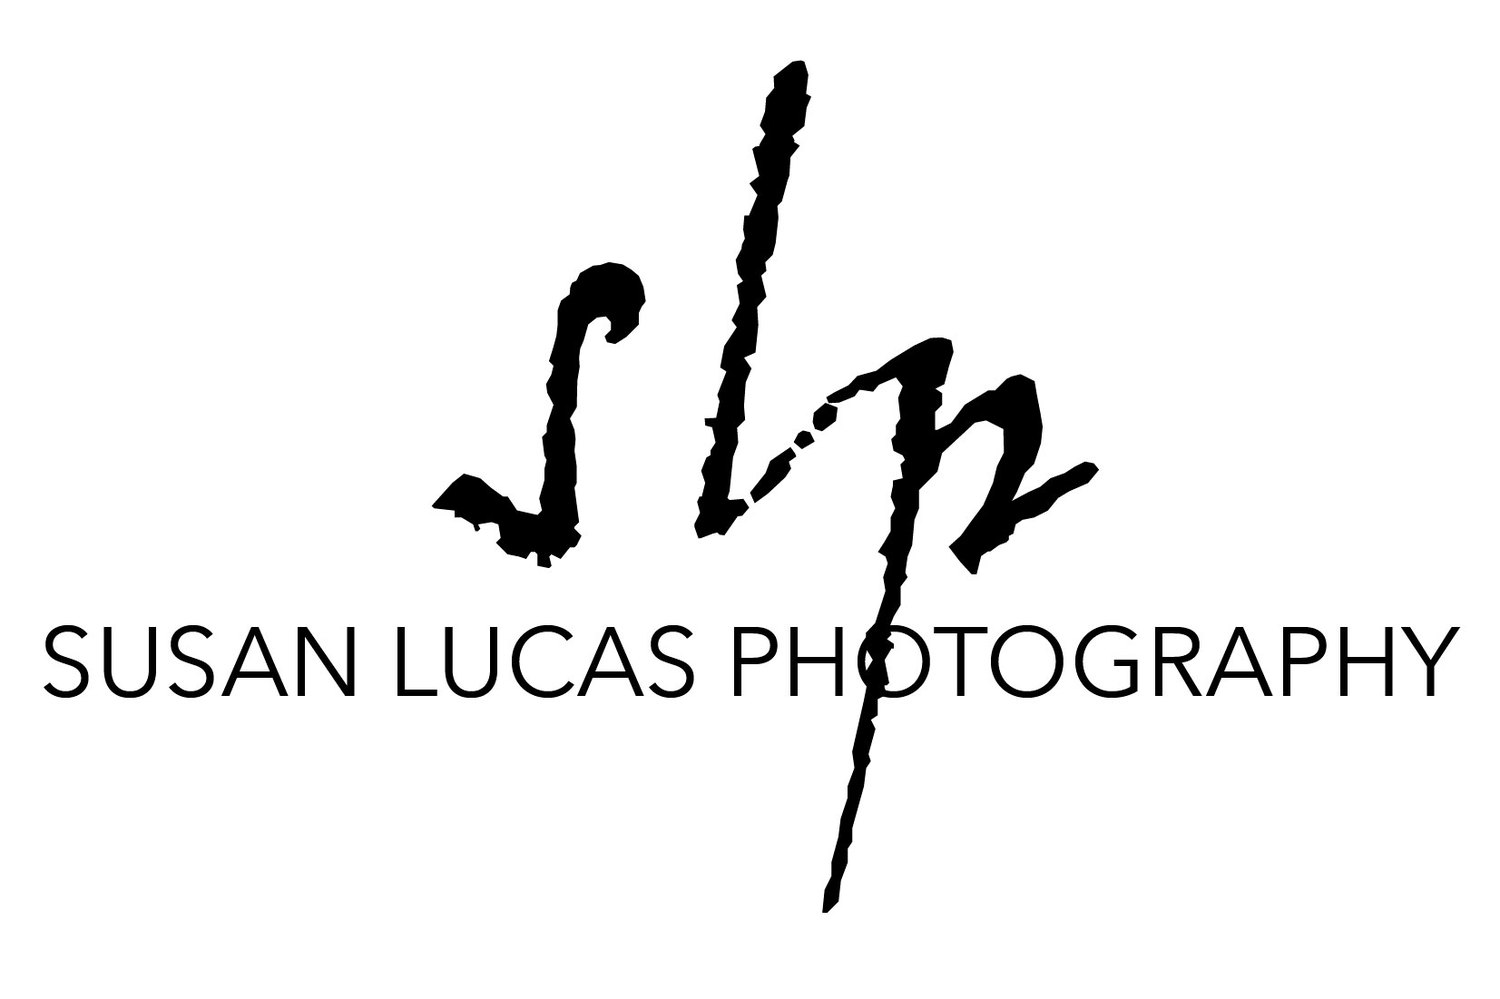 Susan Lucas Photography